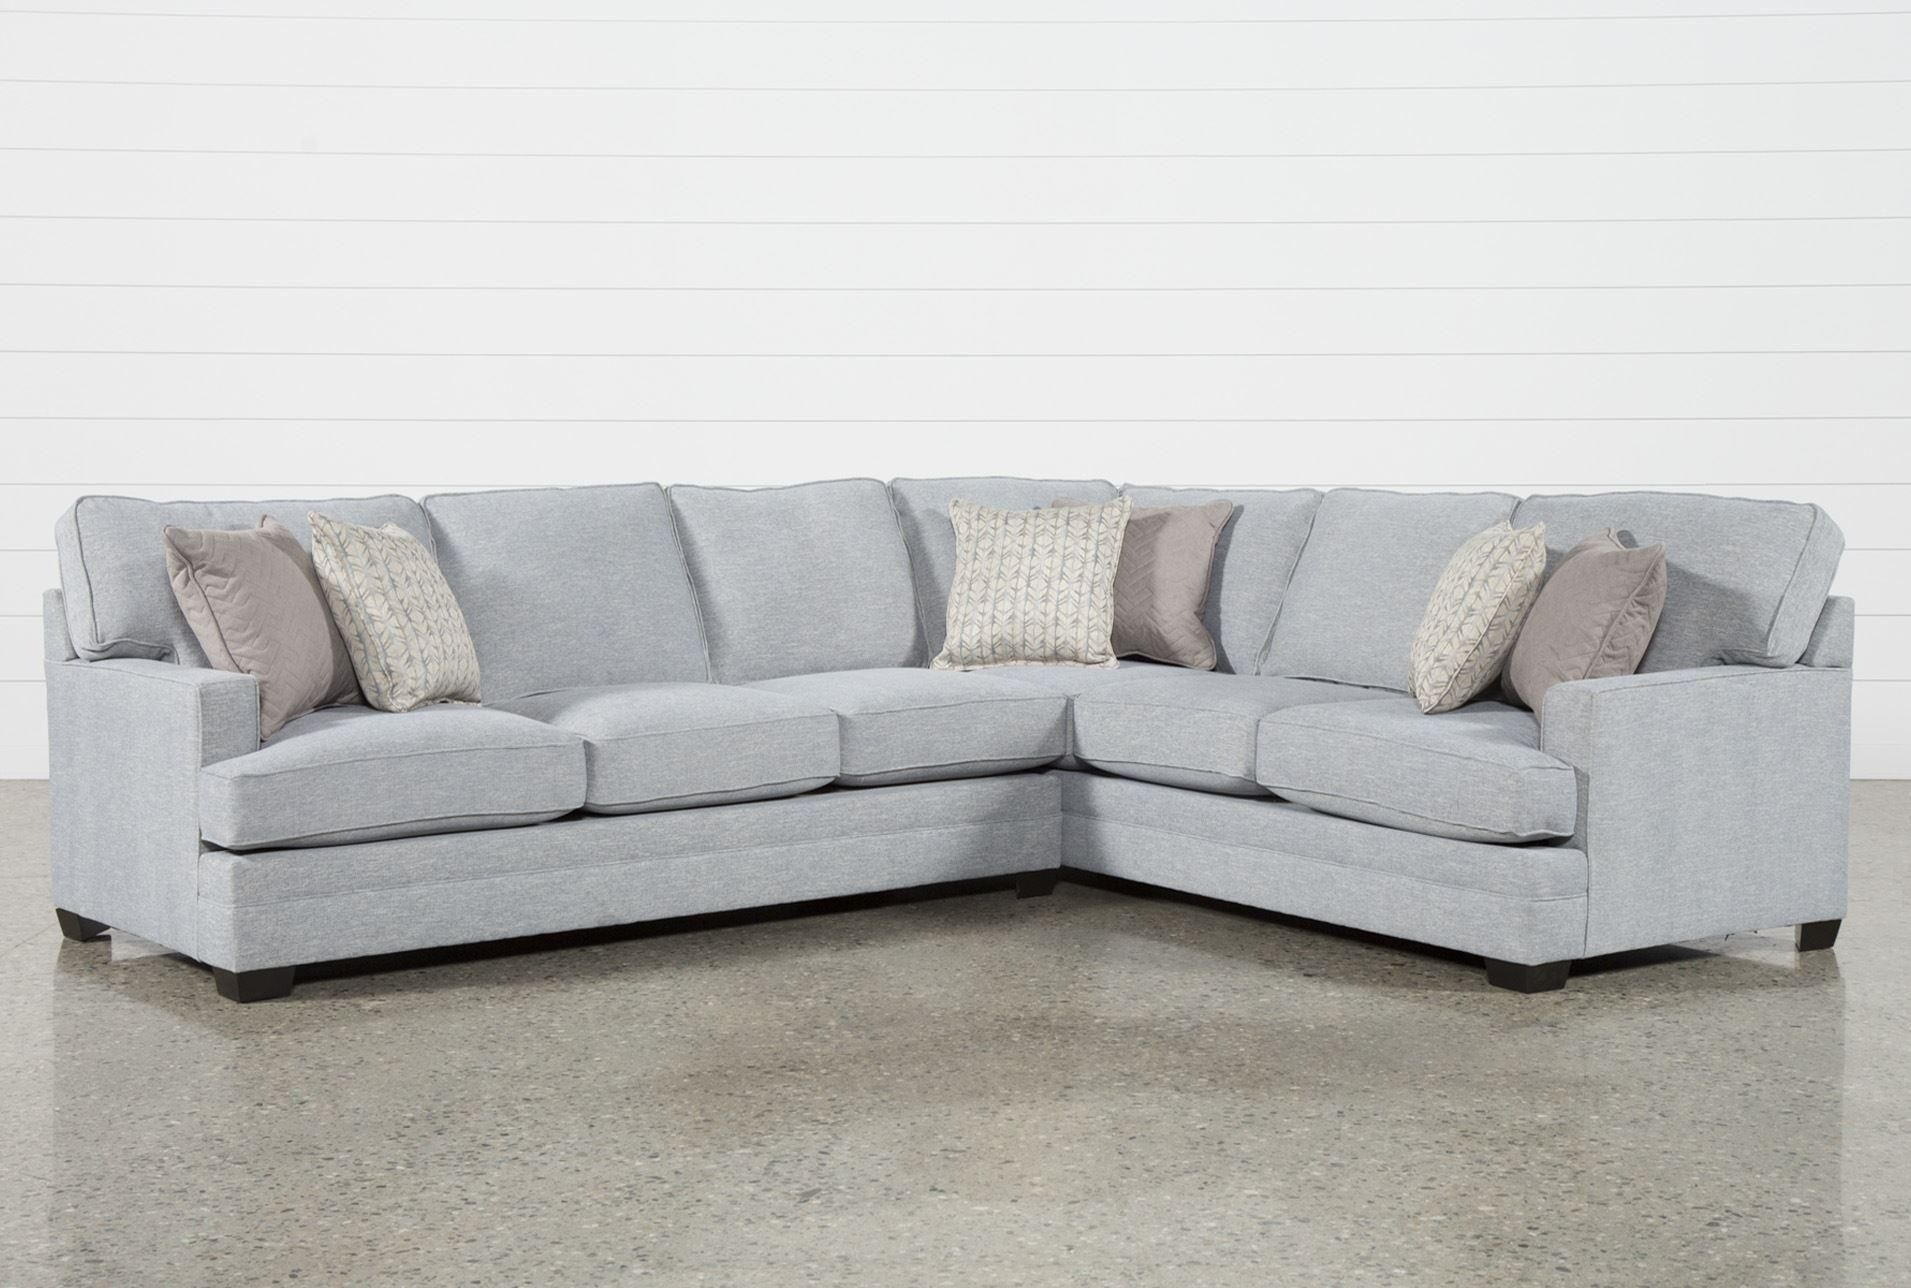 Josephine 2 Piece Sectional W/laf Sofa | For The Home | Pinterest Intended For Mcdade Graphite 2 Piece Sectionals With Raf Chaise (Image 9 of 25)